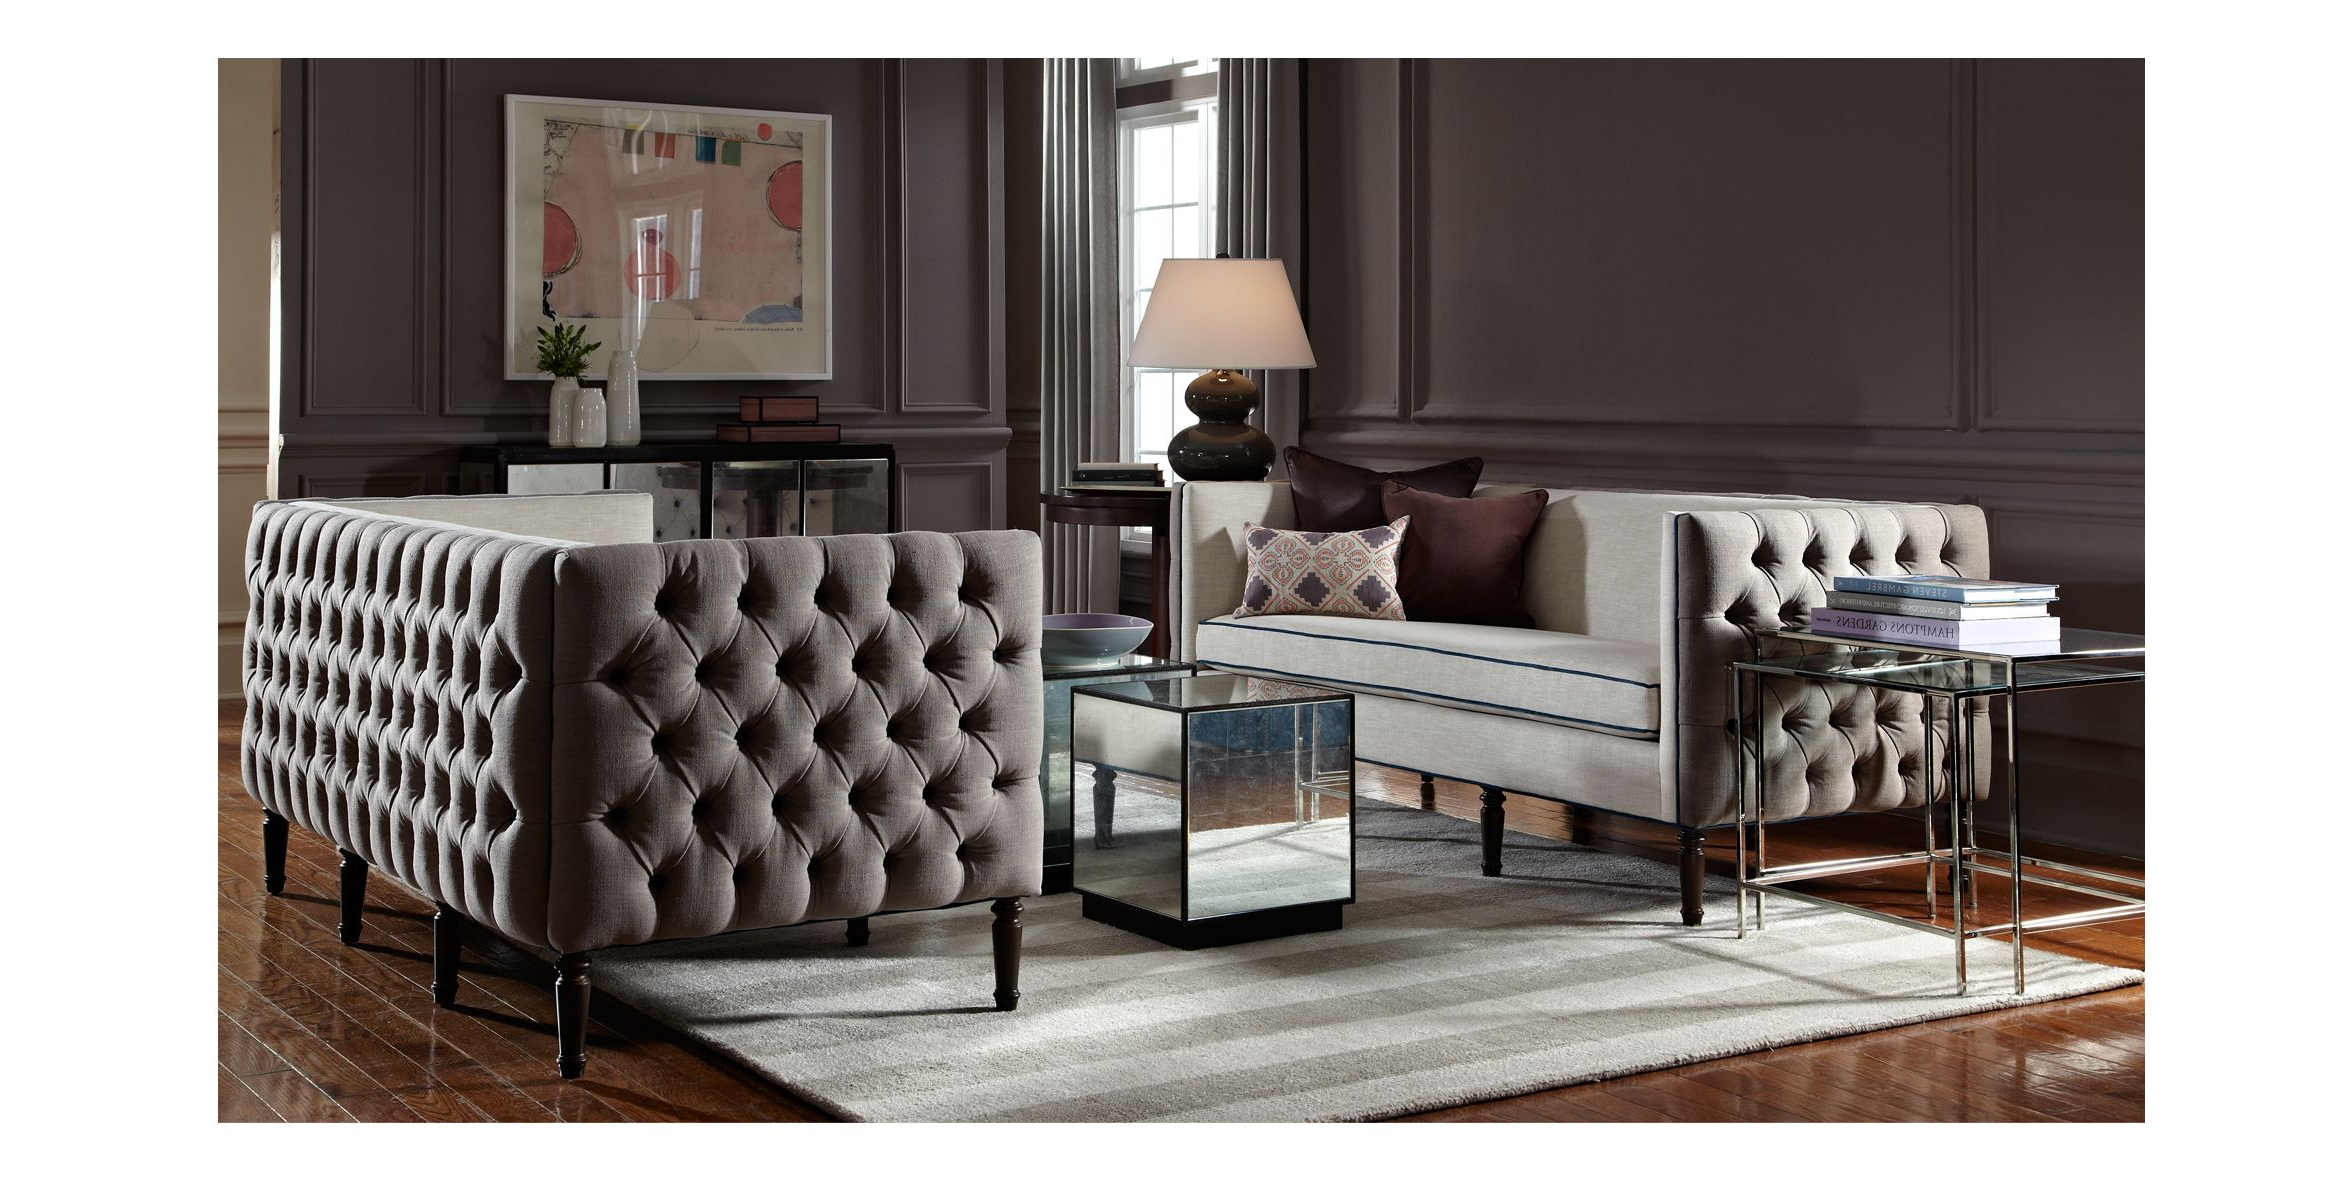 Modern Tufted Sofa – Google Search | Turn Of The Century Moderne Intended For Parsons Travertine Top & Brass Base 48x16 Console Tables (View 15 of 20)